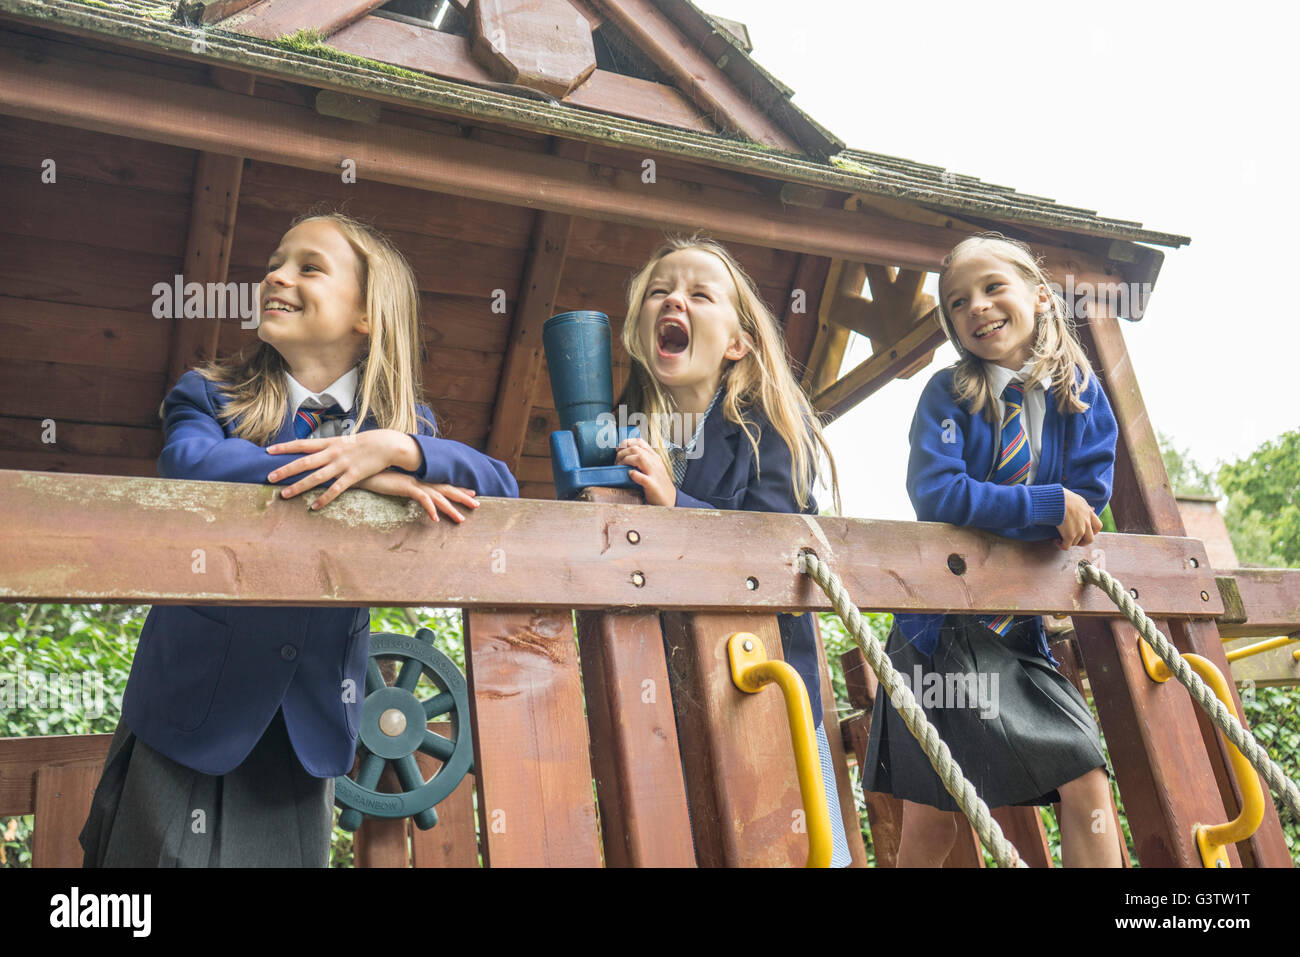 Three girls in school uniform stand together on wooden playground apparatus. - Stock Image